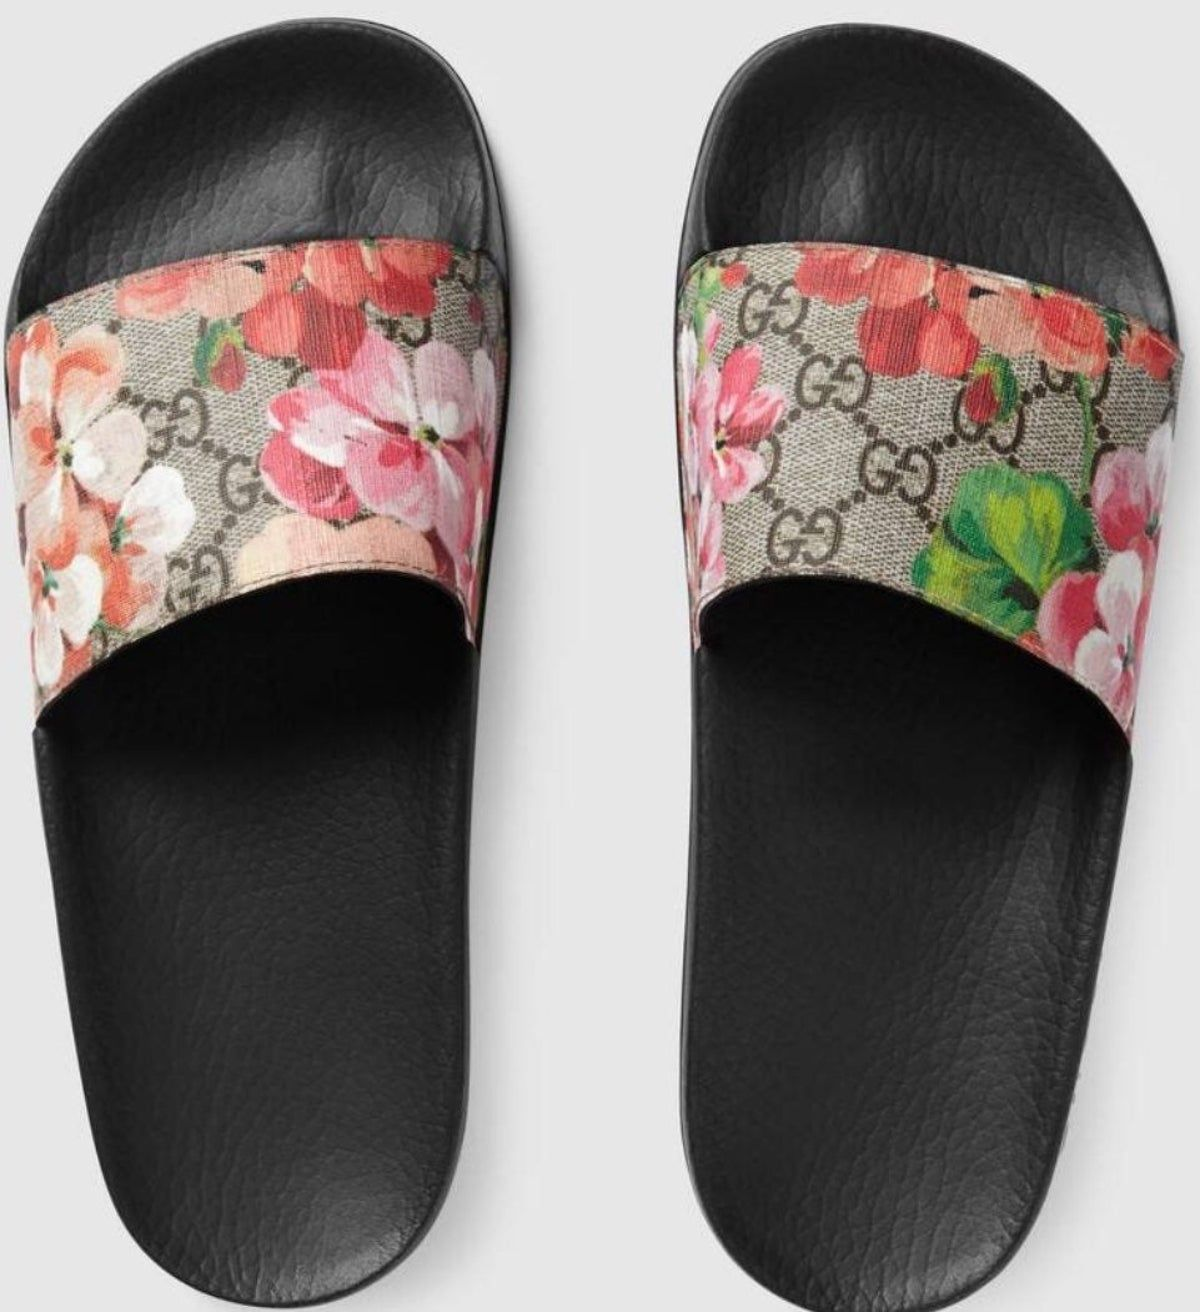 Pin by Ithan on dream shoes in 2020 Gucci floral, Floral